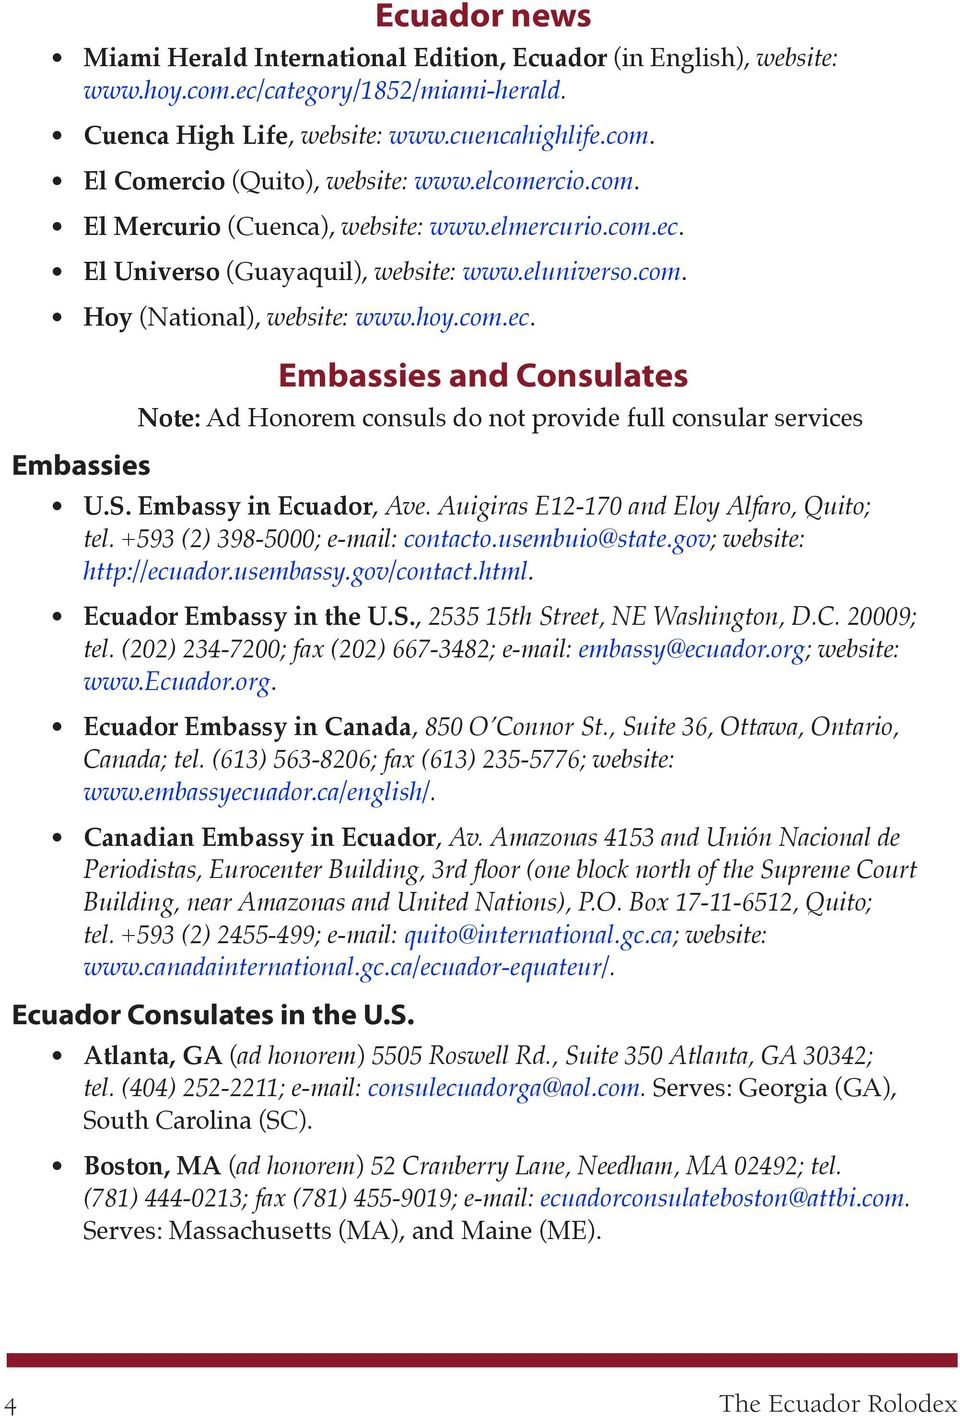 S. Embassy in Ecuador, Ave. Auigiras E12-170 and Eloy Alfaro, Quito; tel. +593 (2) 398-5000; e-mail: contacto.usembuio@state.gov; website: http://ecuador.usembassy.gov/contact.html.